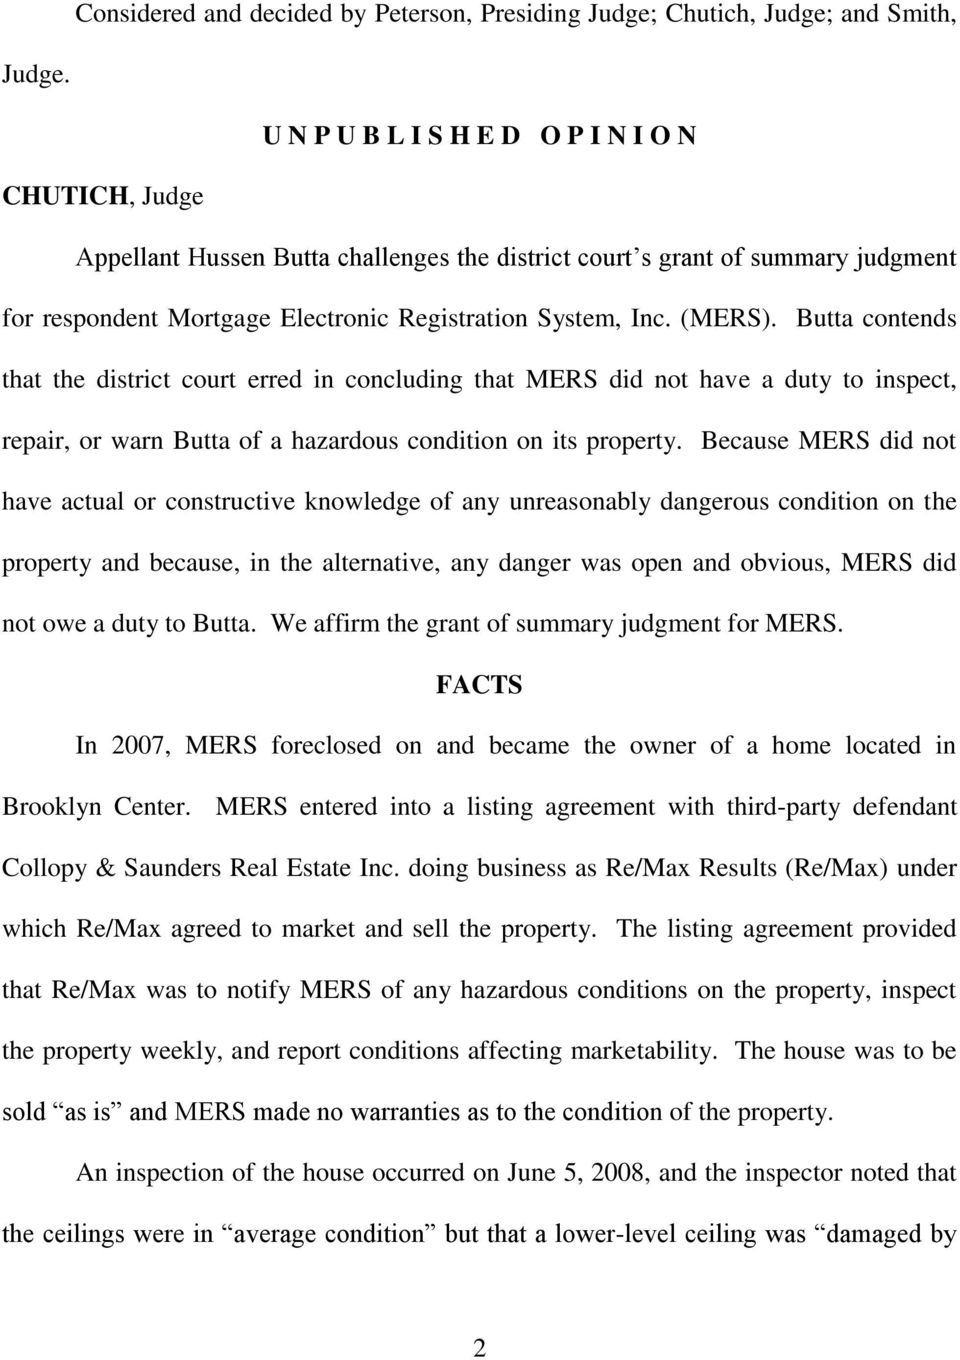 Butta contends that the district court erred in concluding that MERS did not have a duty to inspect, repair, or warn Butta of a hazardous condition on its property.